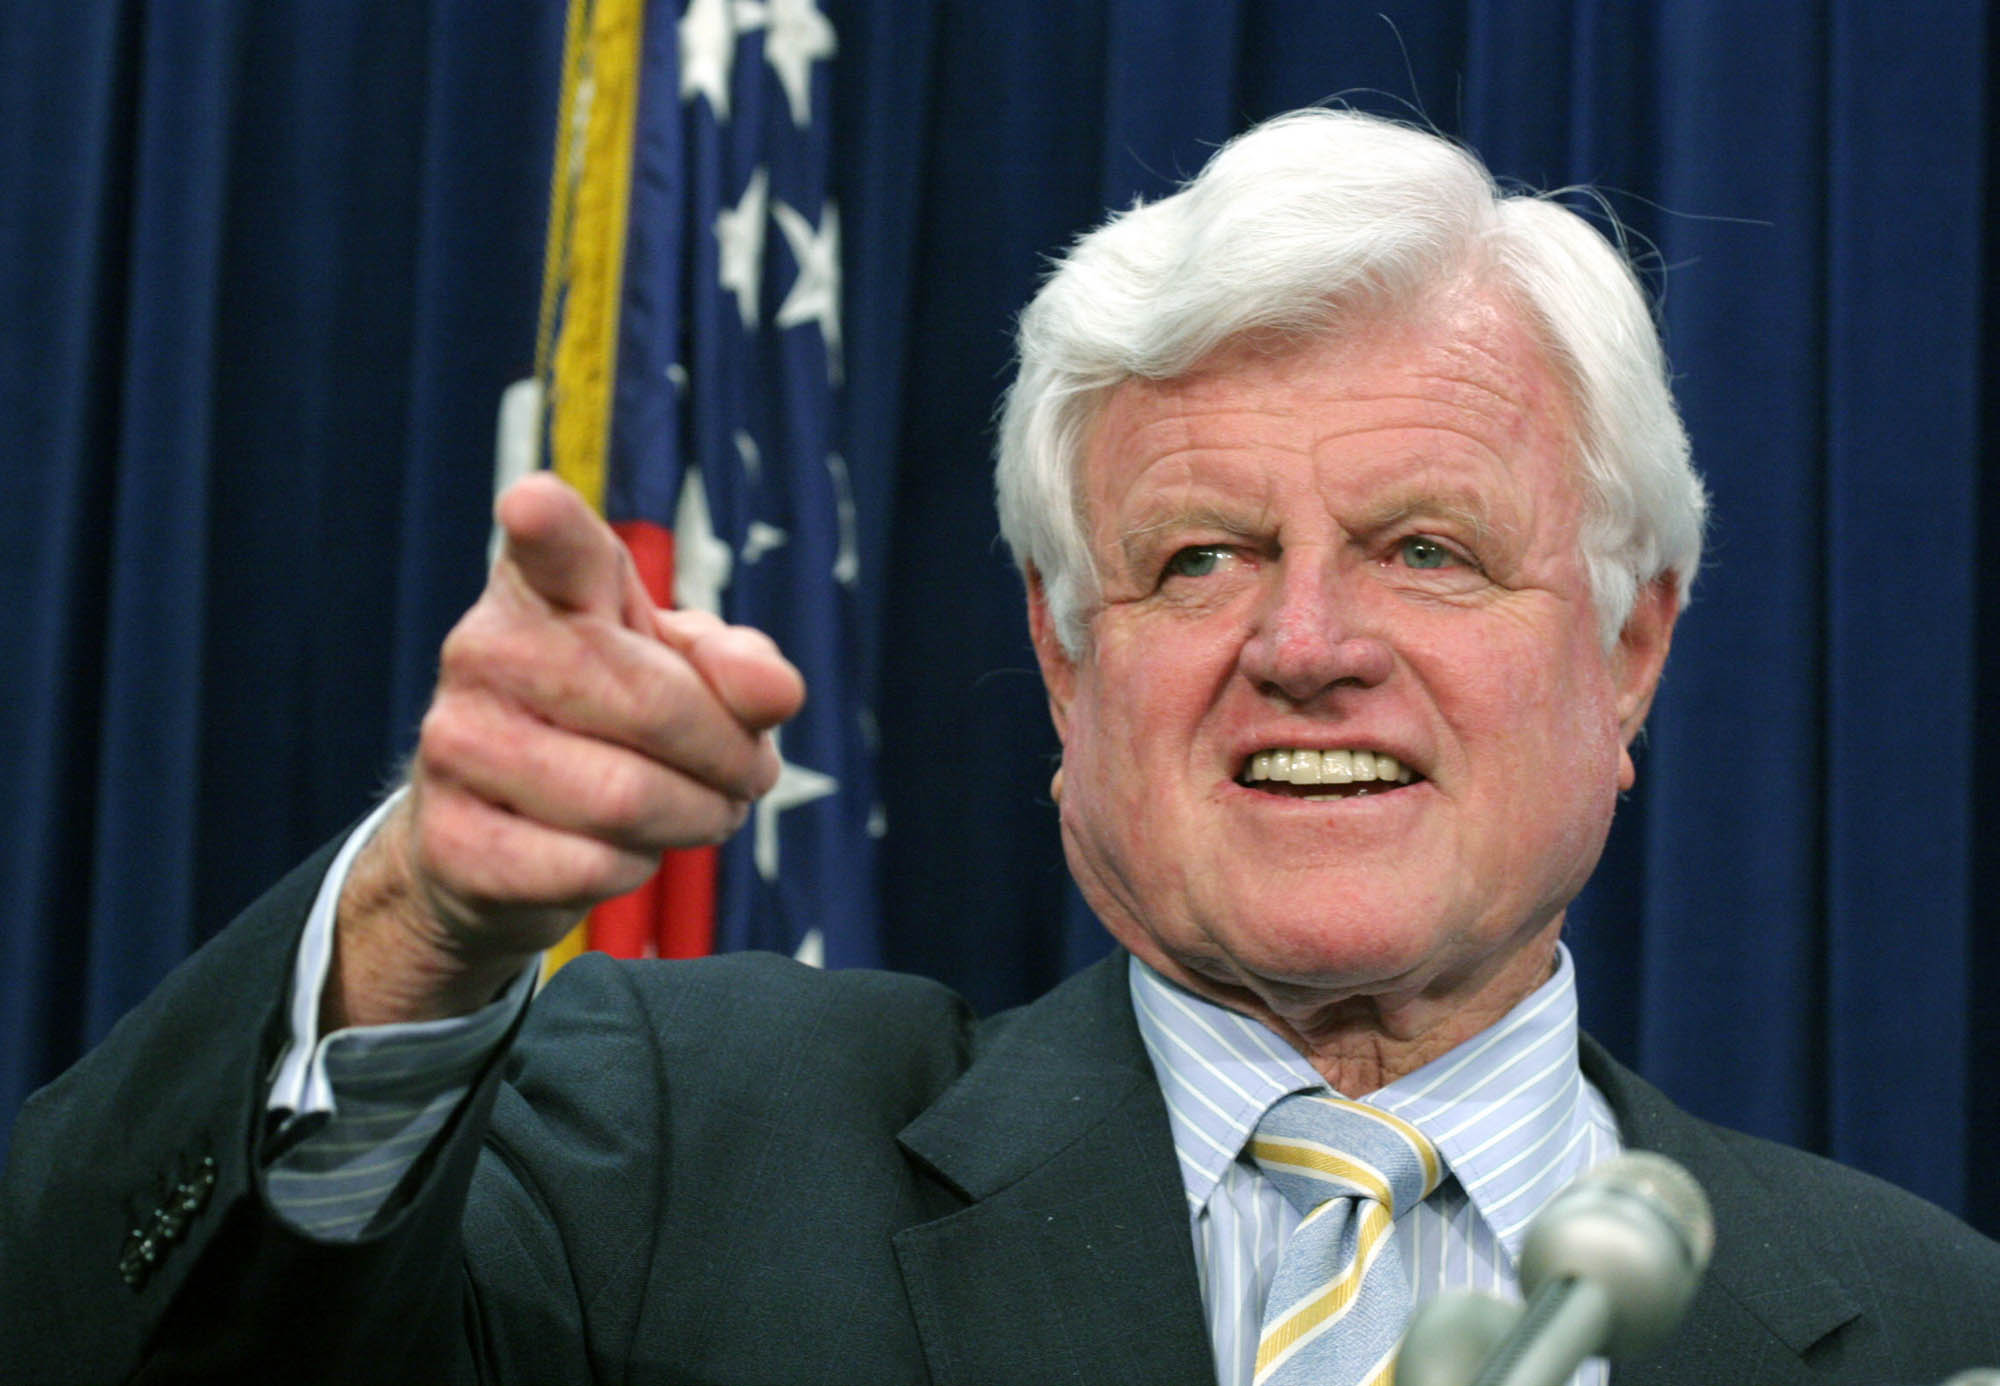 On Wednesday, July 12, 2006 in Washington Sen. Edward Kennedy, D-Mass., is seen during a press conference supporting an increase in the minimum wage. (Lauren Victoria Burke)